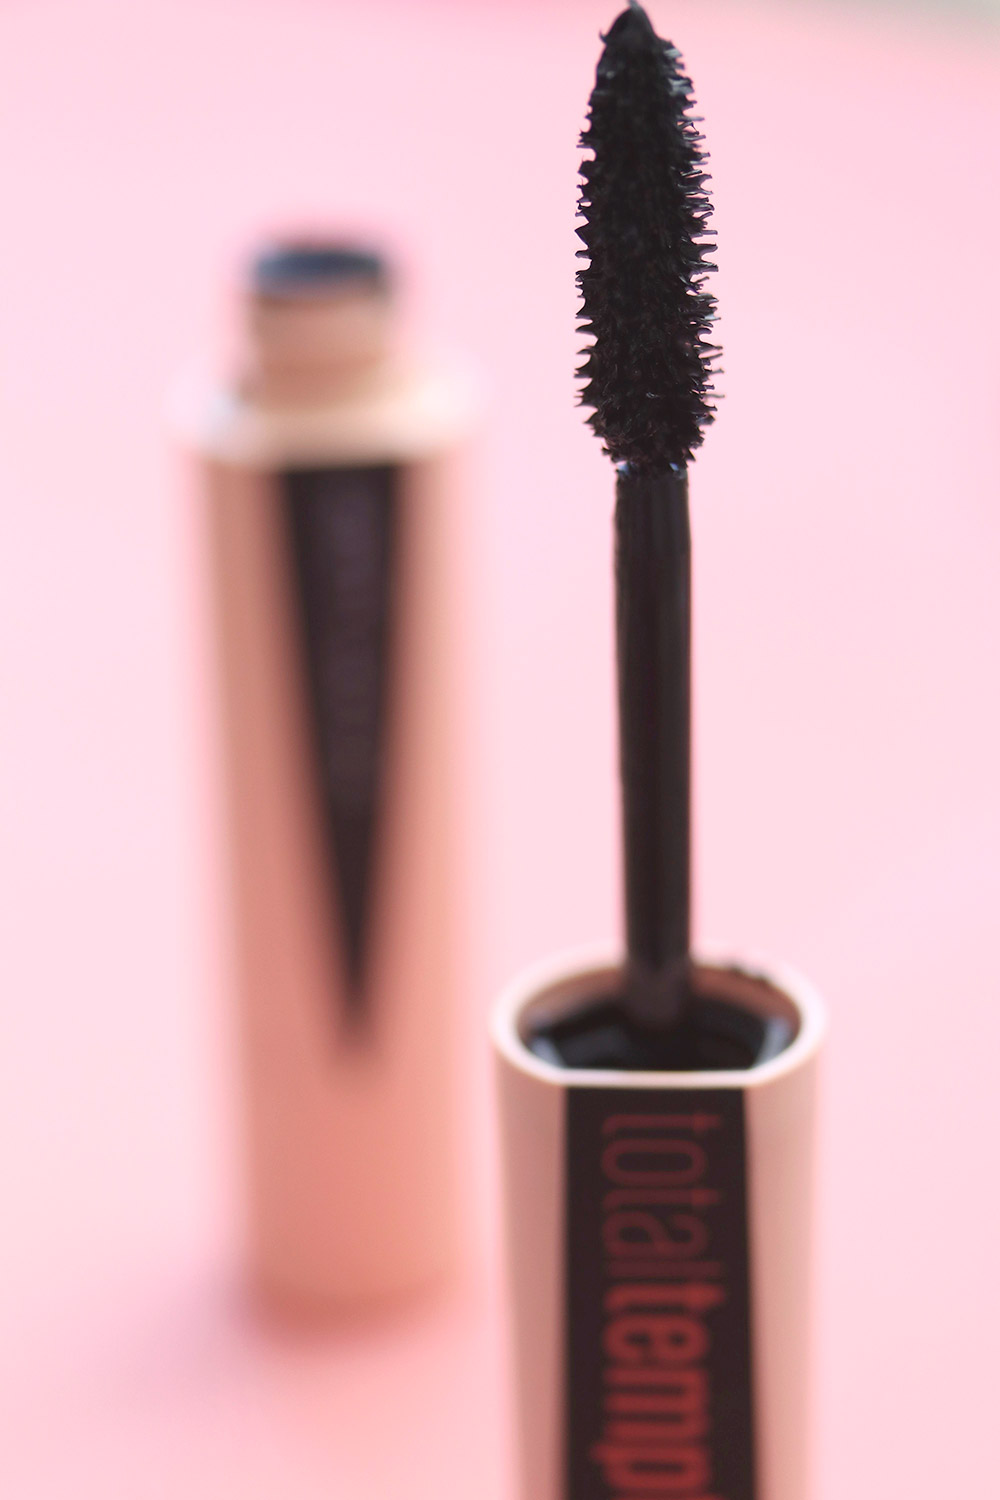 maybelline total temptation mascara wand